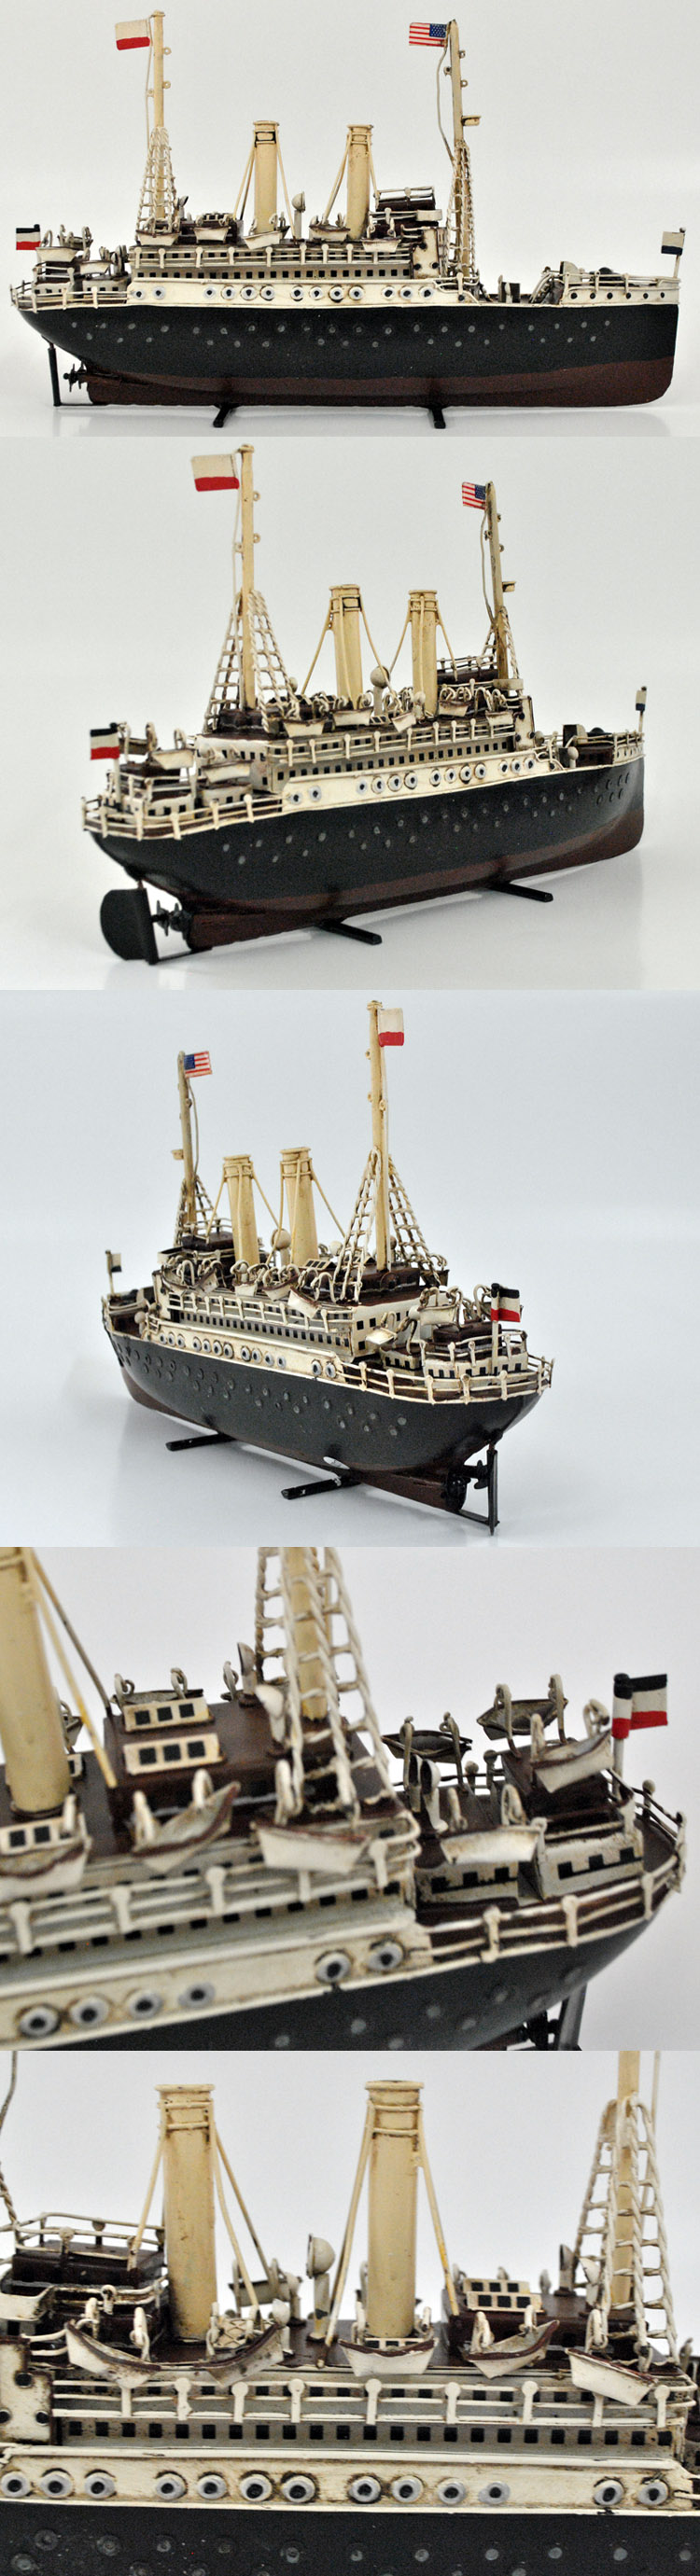 Classical Iron Ship Model For 60th Birthday Gift Ideas Home Decor Art Collections